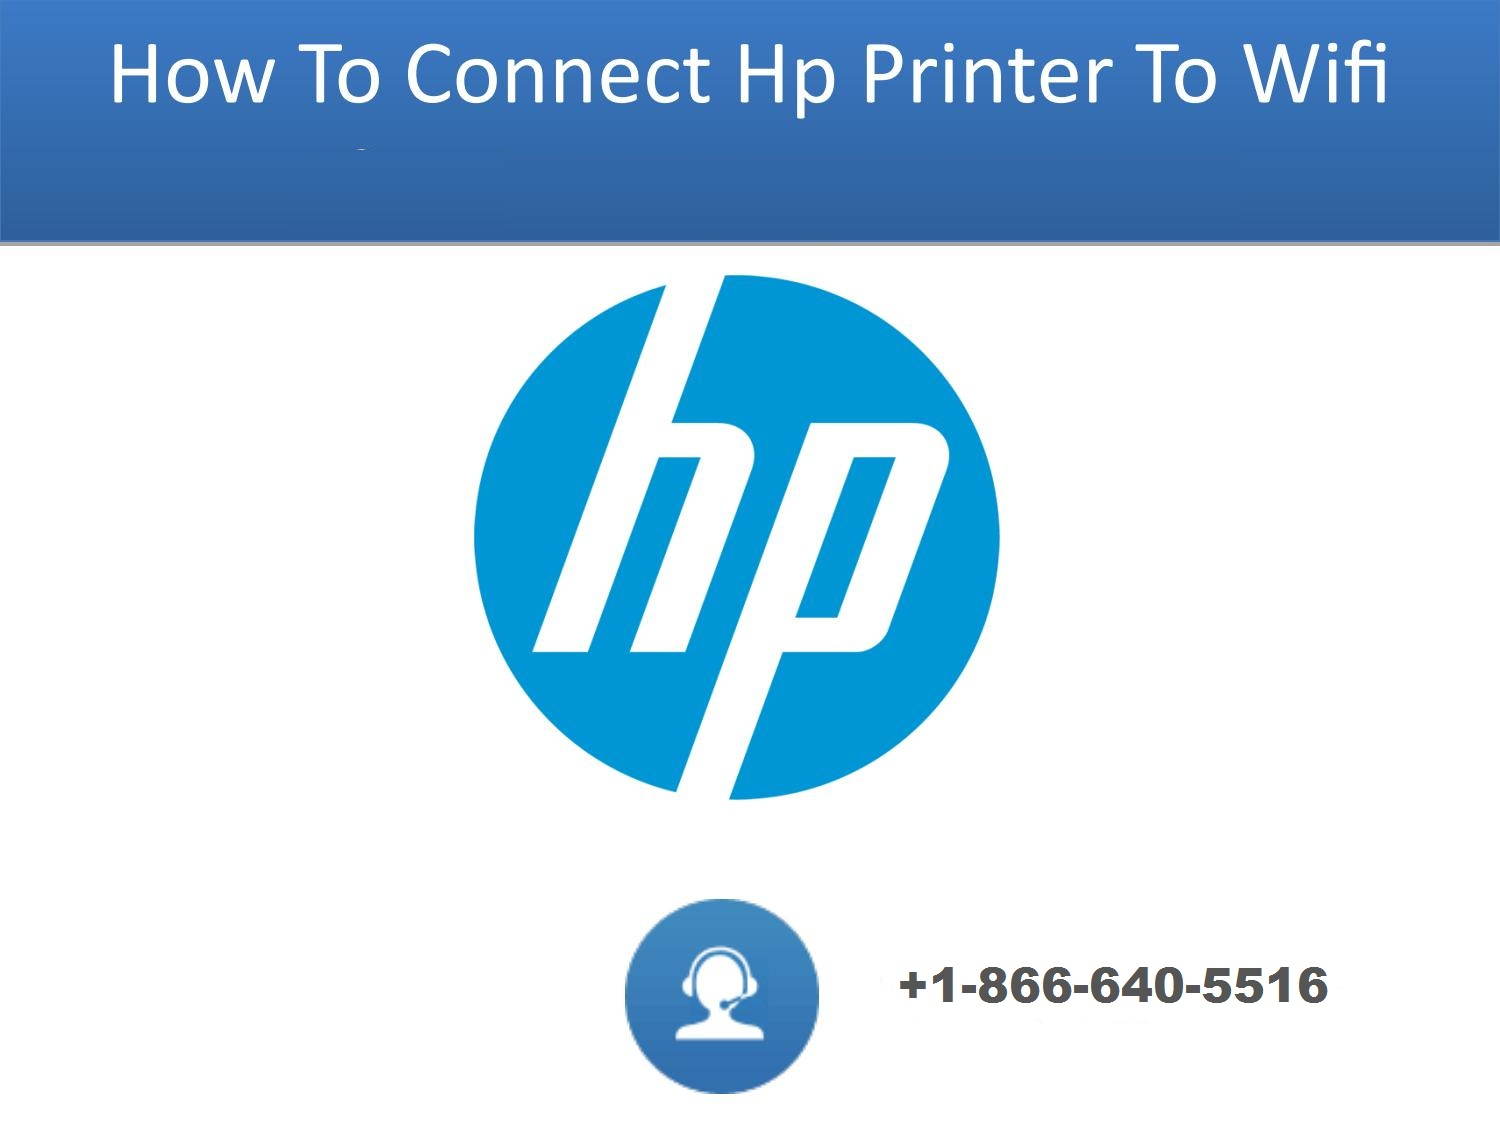 Connect Hp Printer to wifi